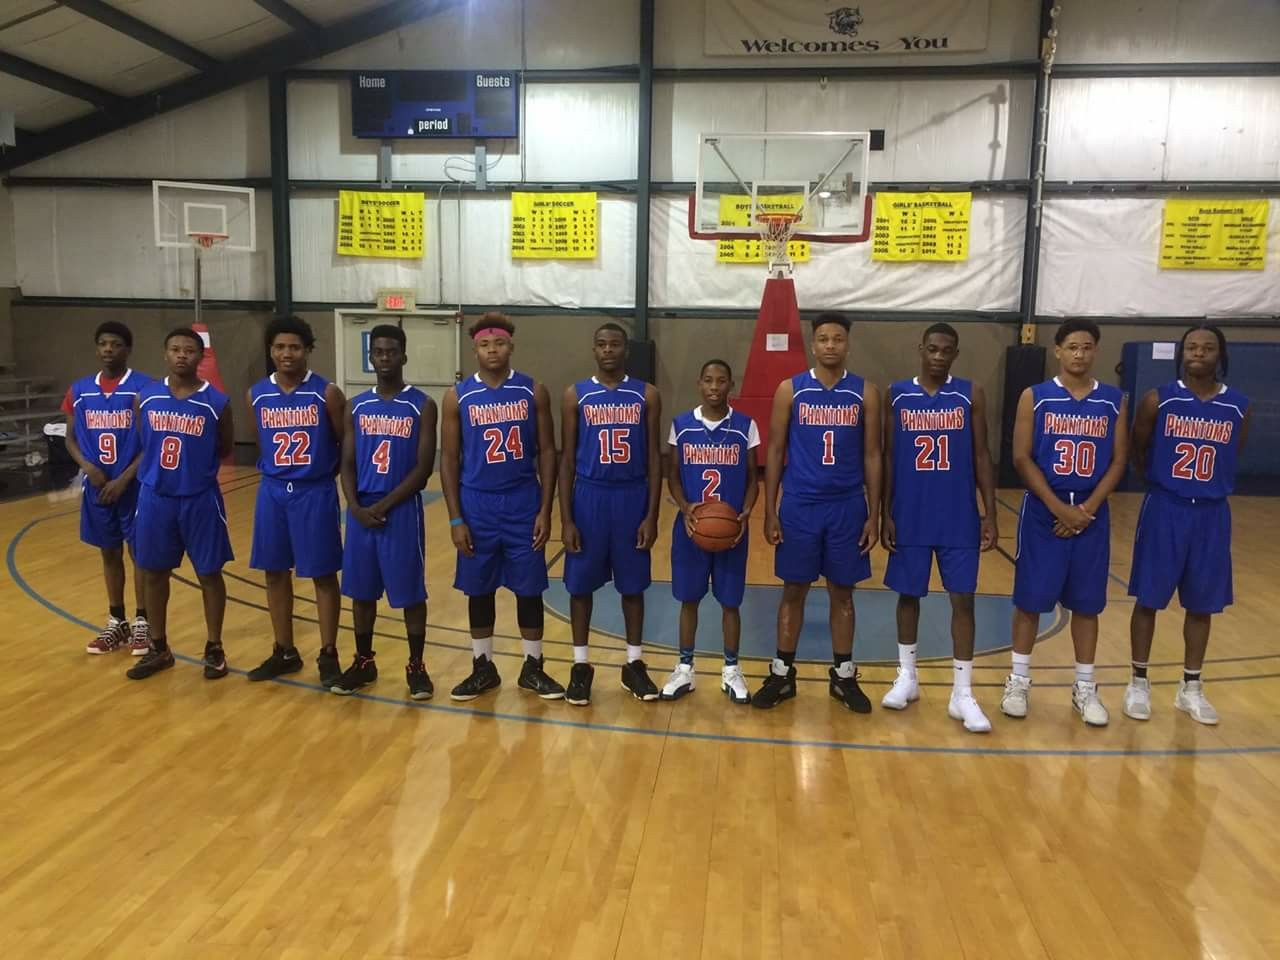 This is a picture of an AAU Basketball team in Richmond. I regularly drove the two boys on the Far left (YaYa and DaShawn) from .Mosby Court to their practices, to reduce the chance of them getting shot last year, during the height of the gun violence epidemic we we experiencing on their street. These boys are all worth the investments adults make in them. One member of the team lost his life in a drive-by shouting last winter (not one of my boys). I regularly drive the kids to and from events, church youth groups and AAU basketball practices. While this doesn't dismantle white privilege, it is an attempt to compensate for their lack of privilege caused by white supremacy/systemic racism, until it is dismantled.